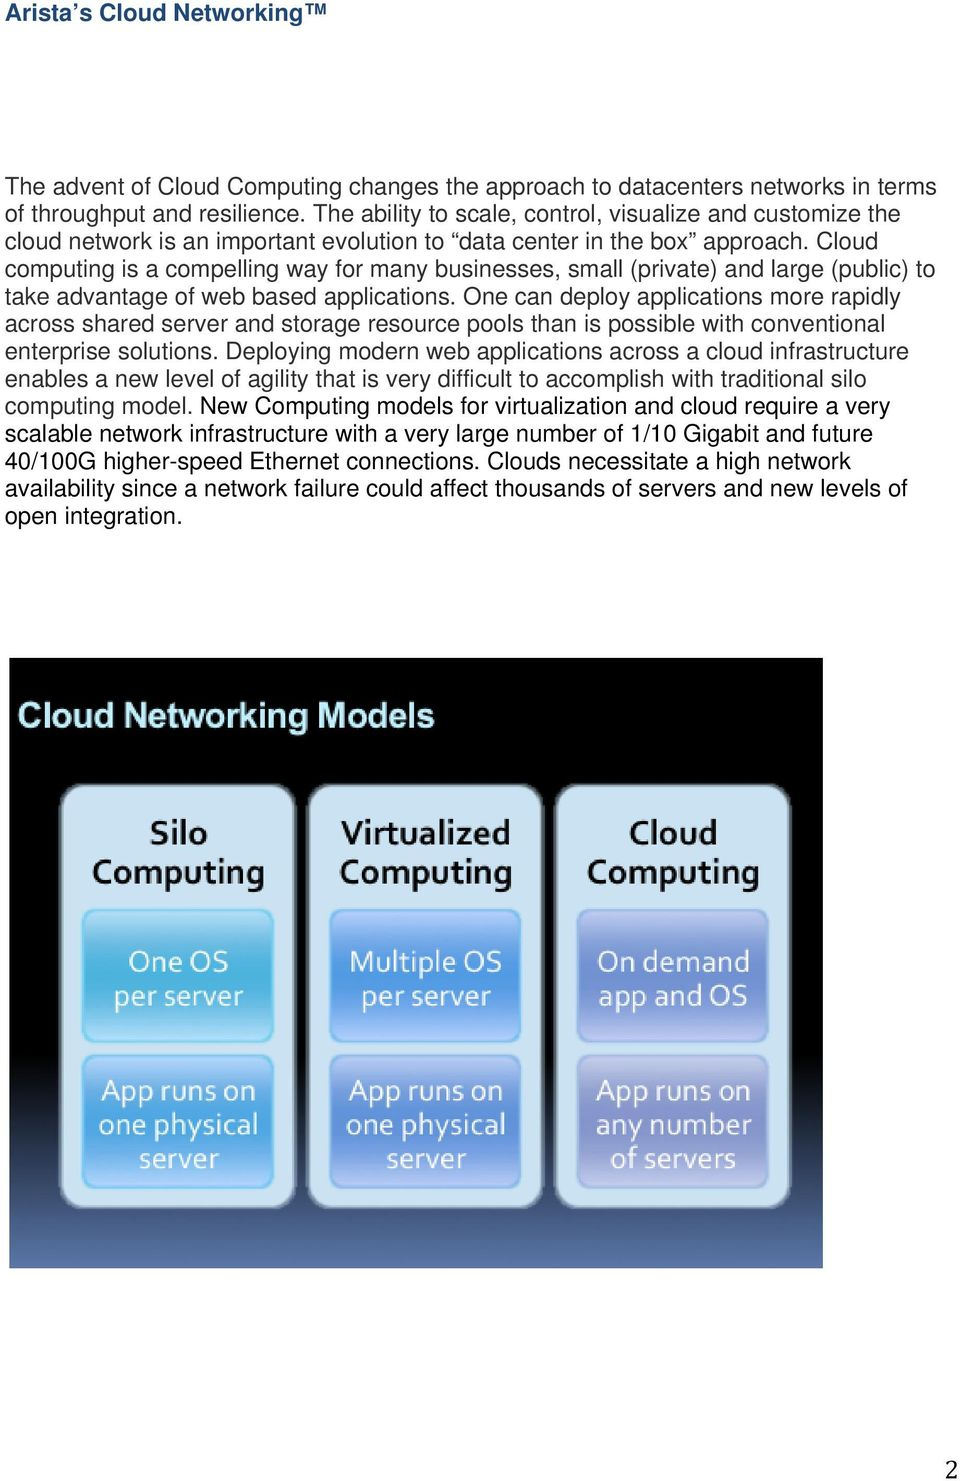 Cloud computing is a compelling way for many businesses, small (private) and large (public) to take advantage of web based applications.